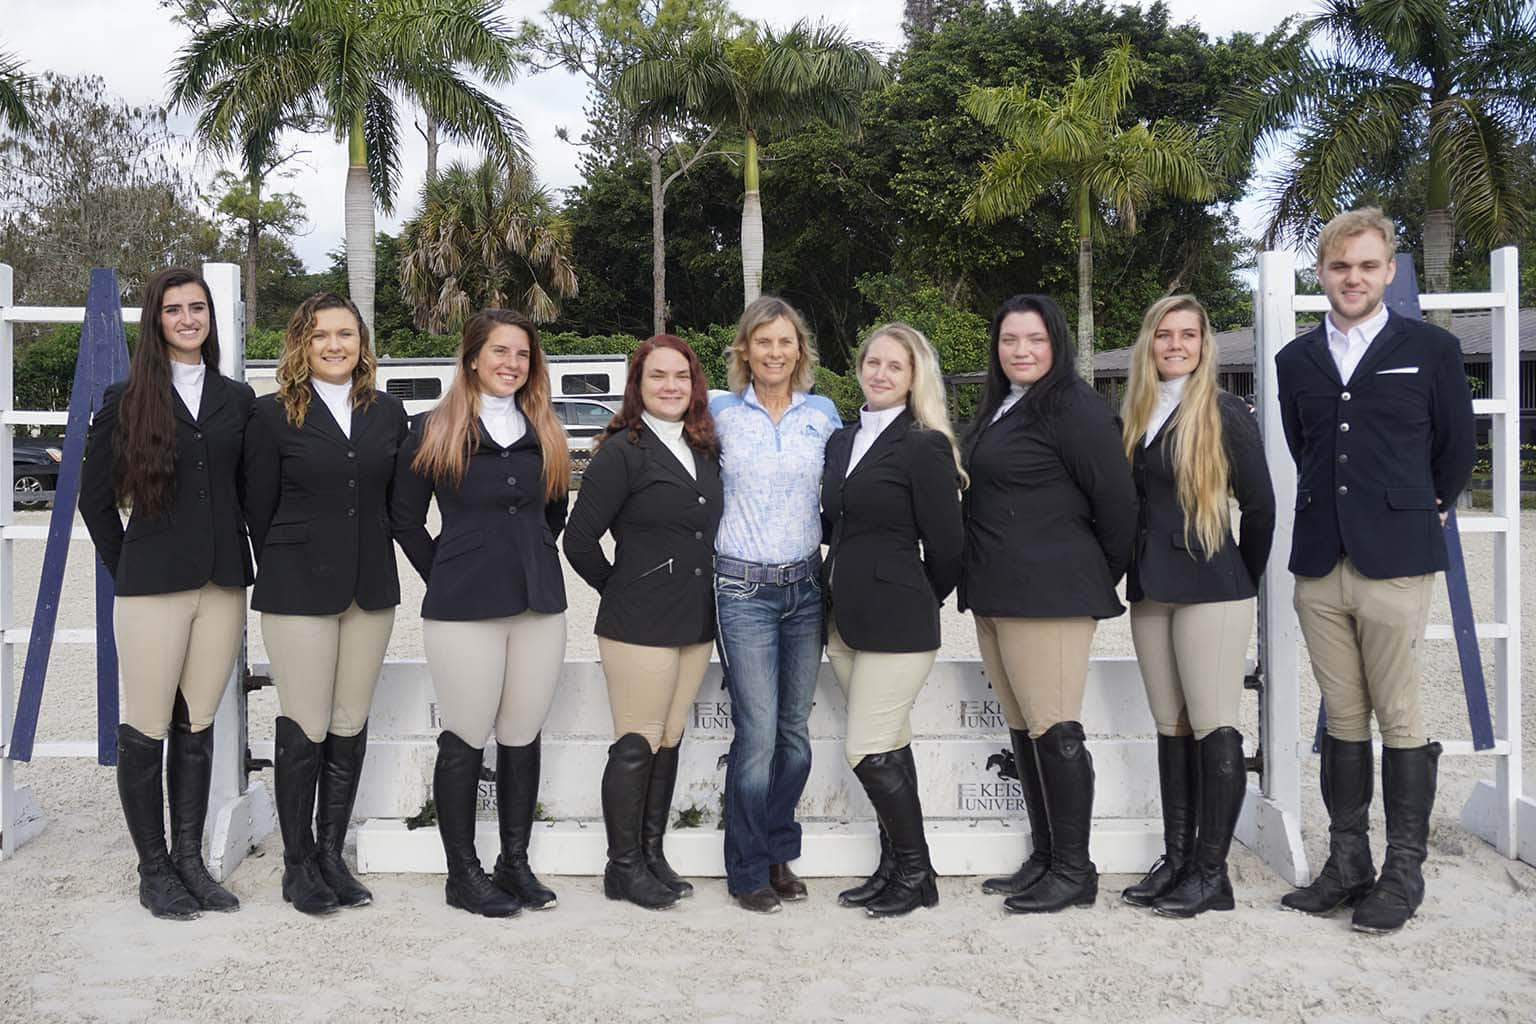 Keiser and Brown University Equestrian Team Members Enjoy 'Horsing Around'